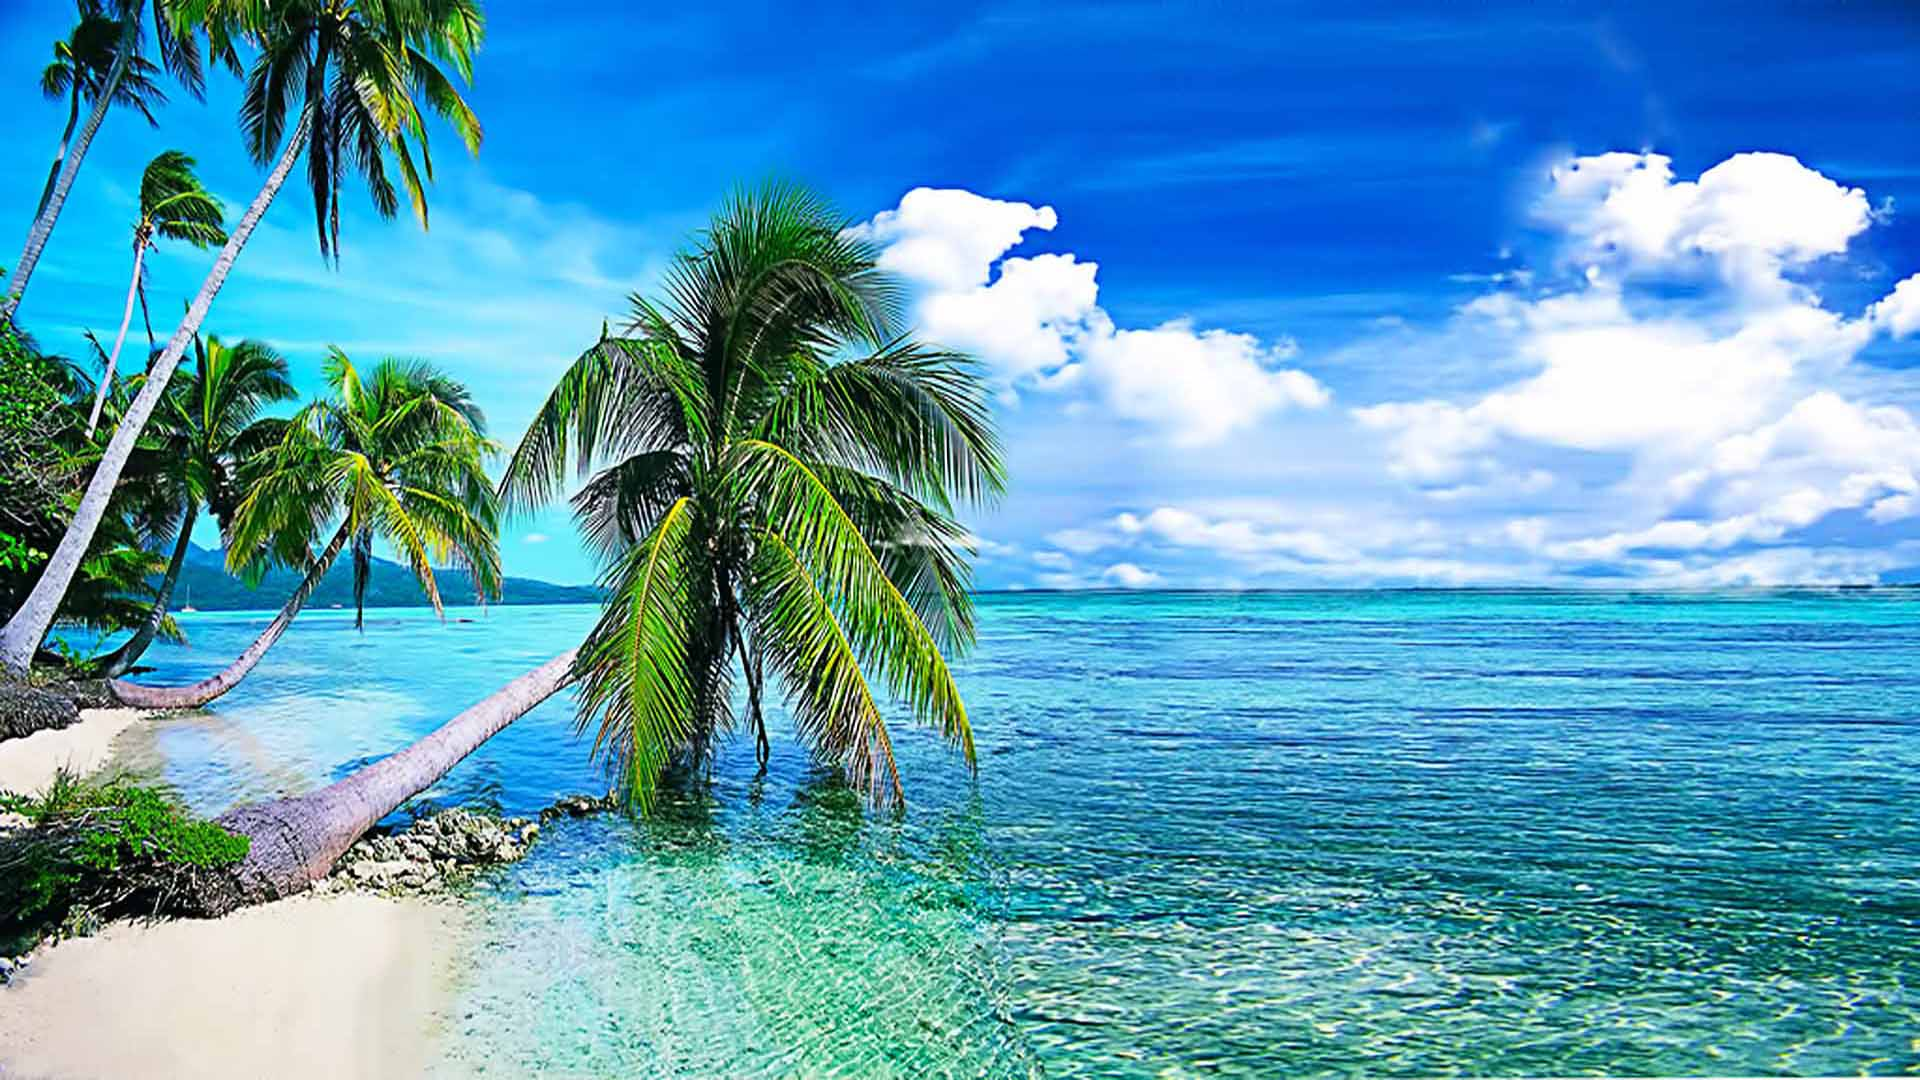 Summer Background, Tropical Beach With Palmi.okean With Crystal Clear ...